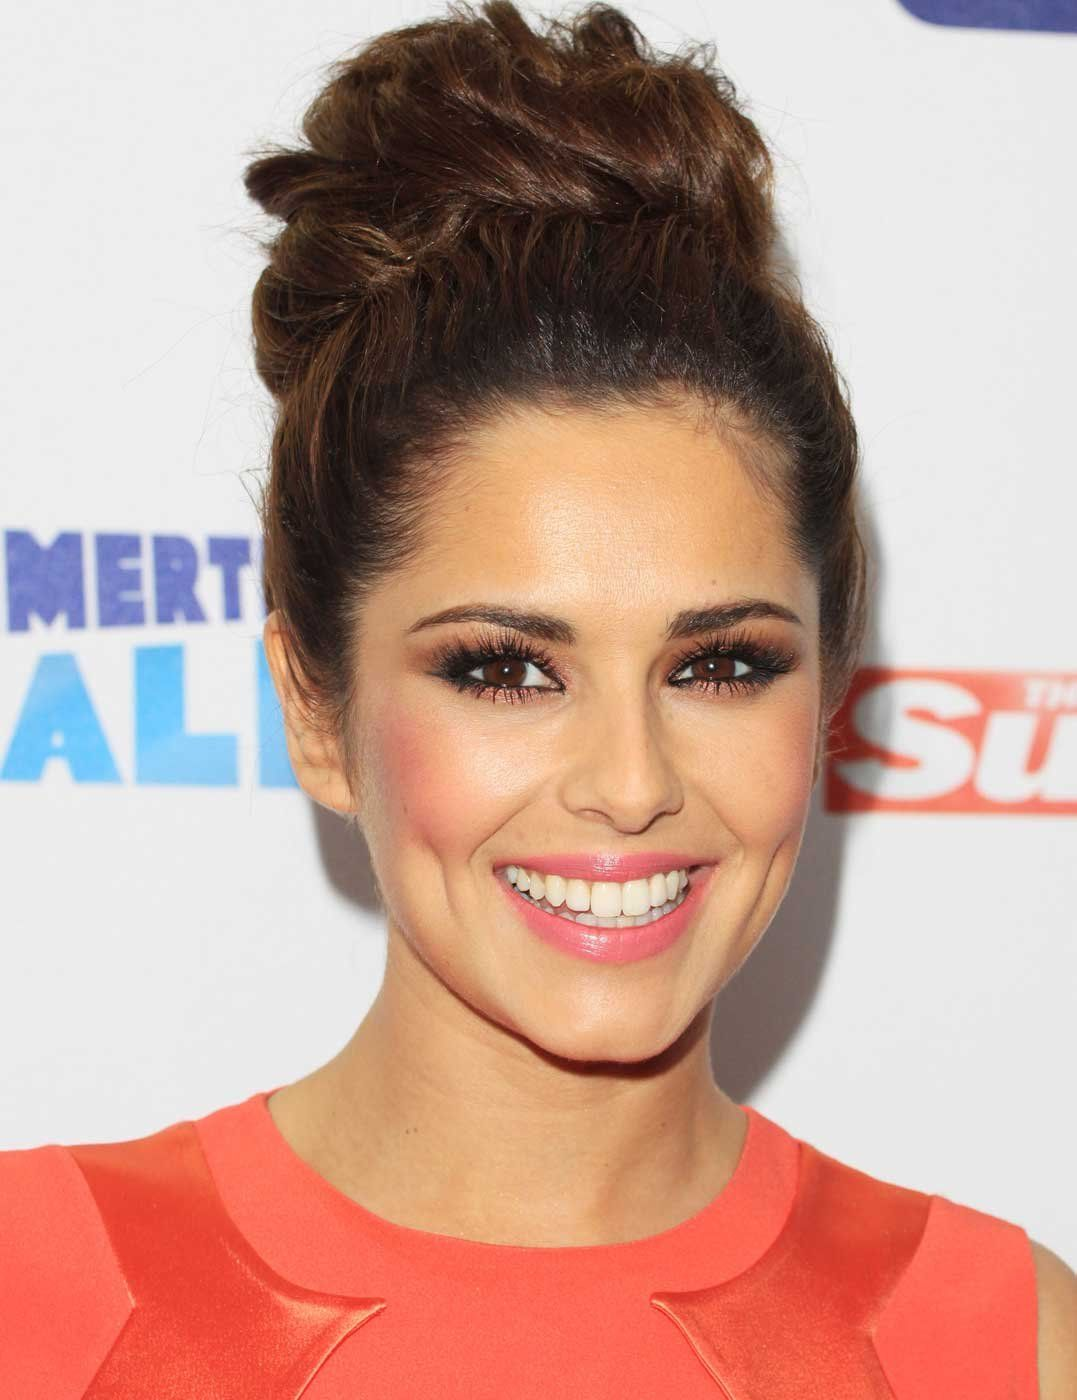 Ultimate Celebrity Makeup Looks 2012 ELLE UK/ Cheryl